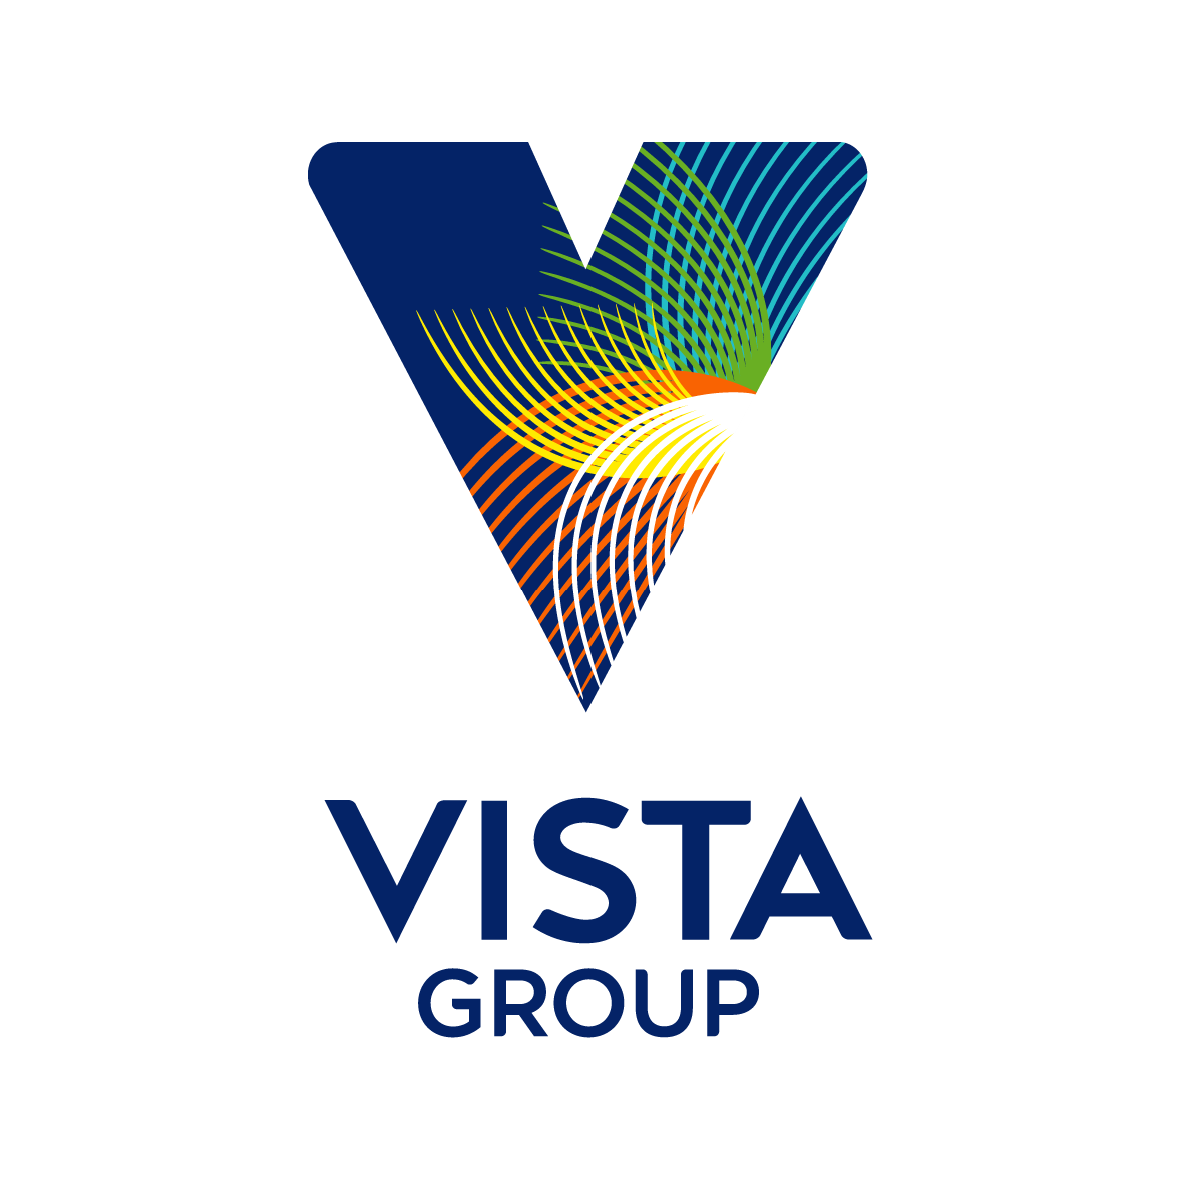 Vista group international wikipedia for International design company